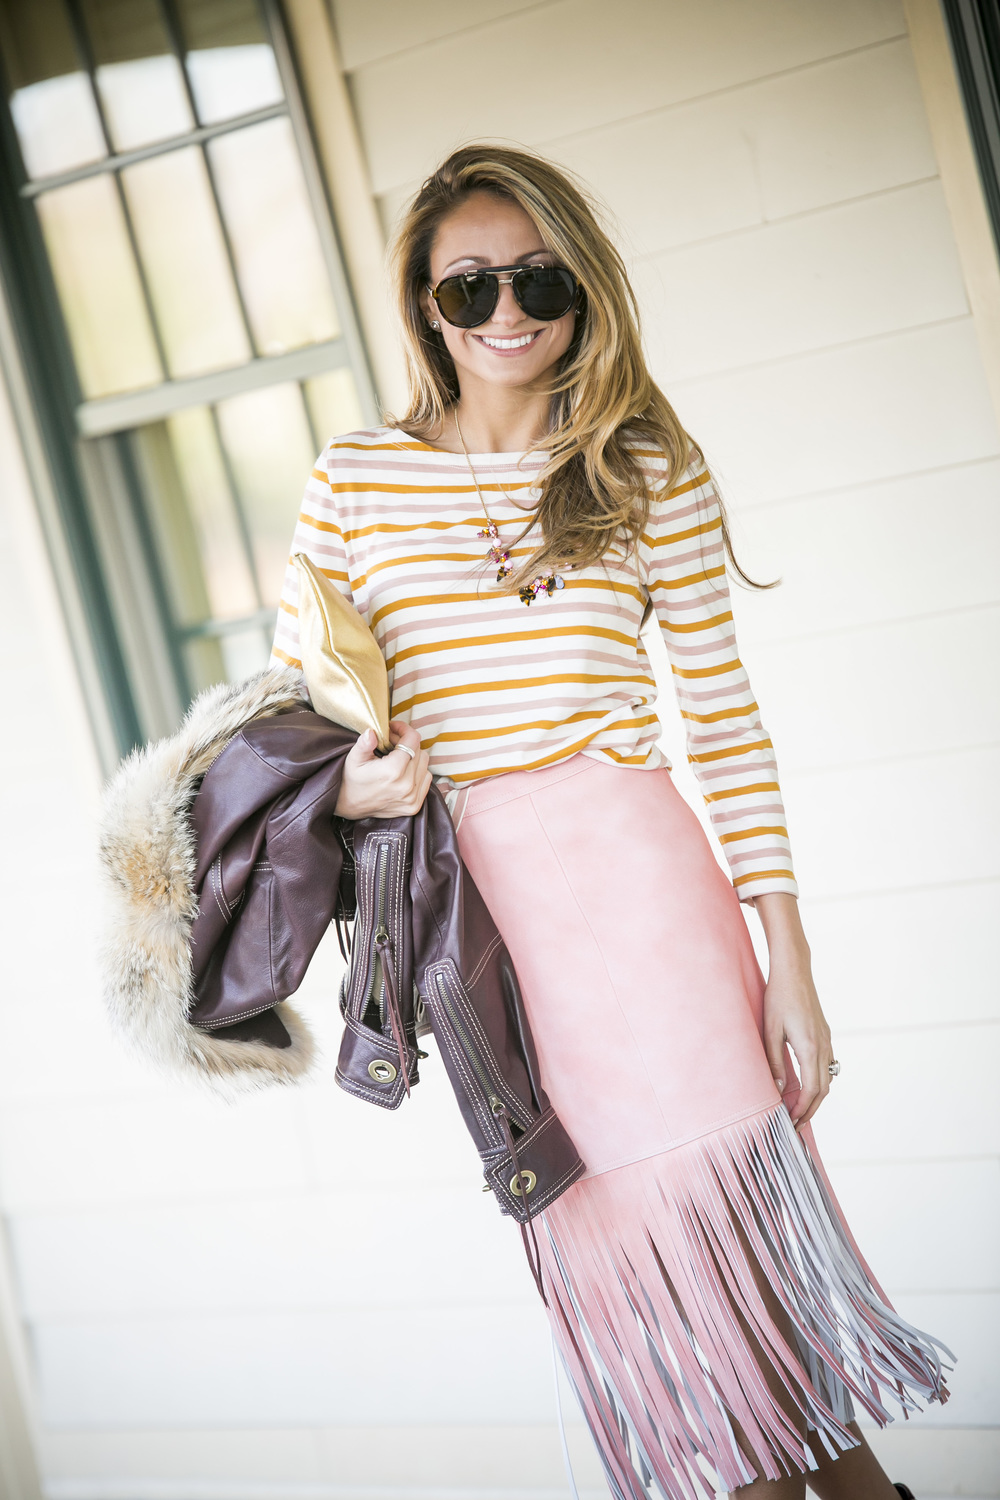 J.Crew stripes and J.Crew skirt